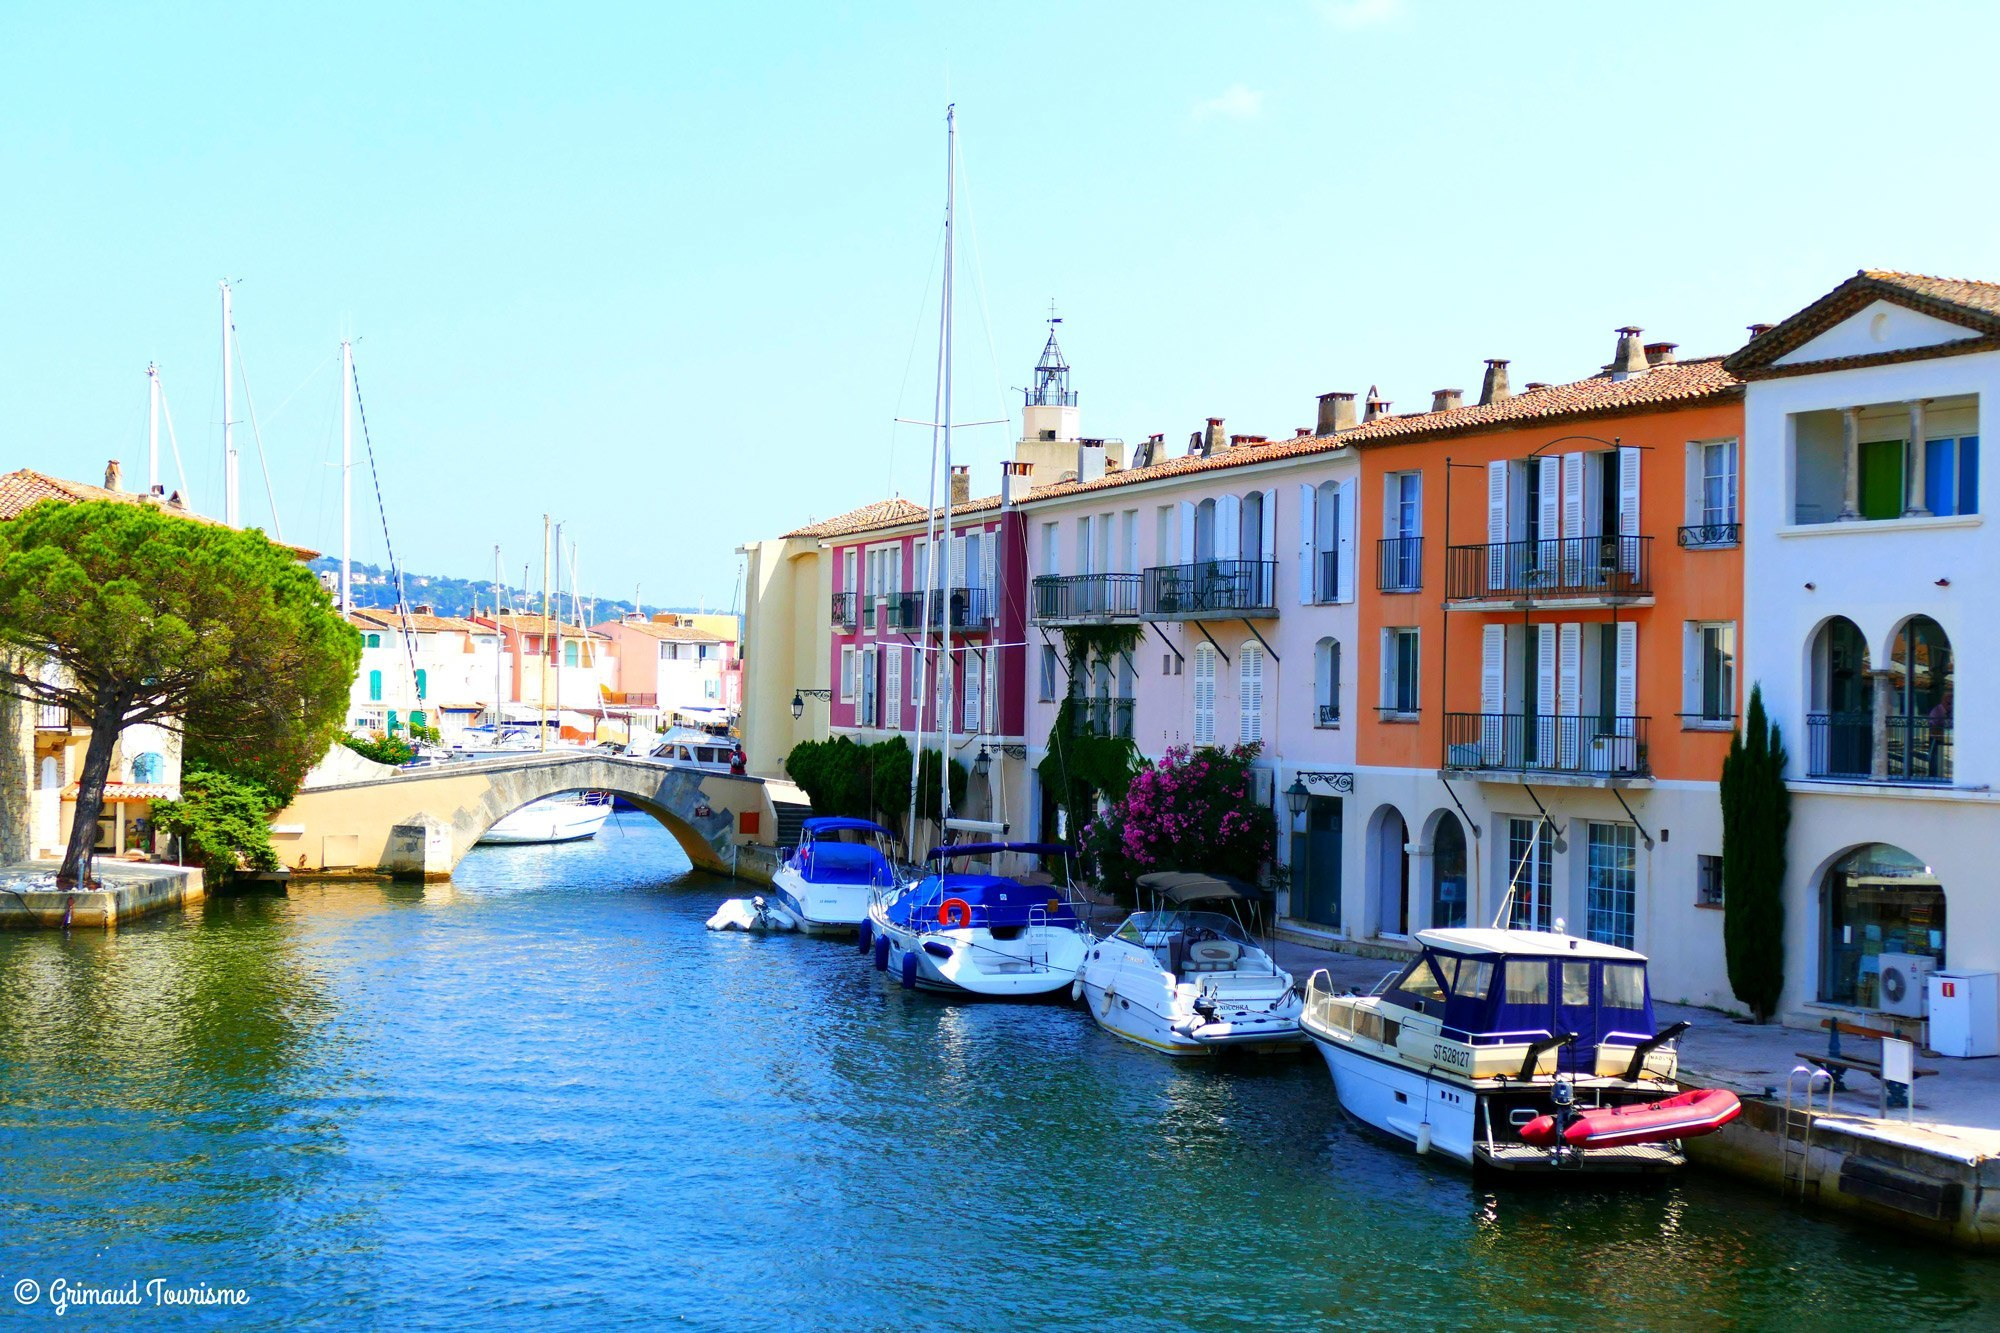 Port Grimaud The Mustsee Attractions Cap Taillat Campsite - Port grimaud location